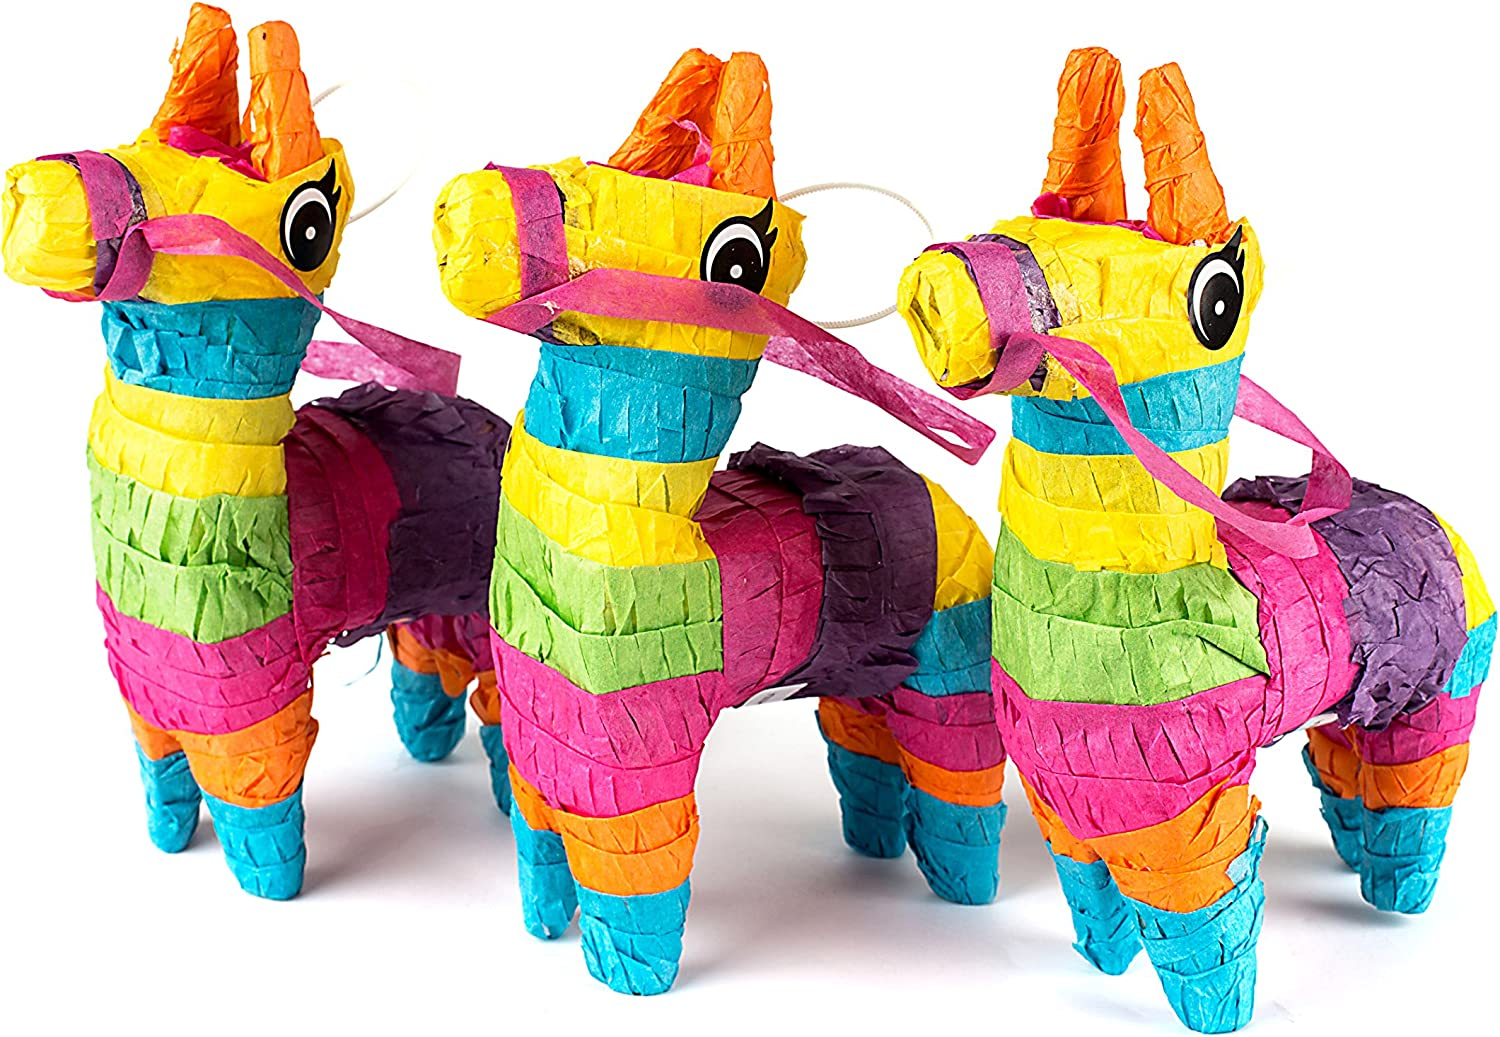 "Neliblu Set of 3 Mini Donkey Pinatas 4""x7"" inches, Fiesta Decorations, Cinco de Mayo Pinata, Party Favors, Party Supplies and Centerpieces"